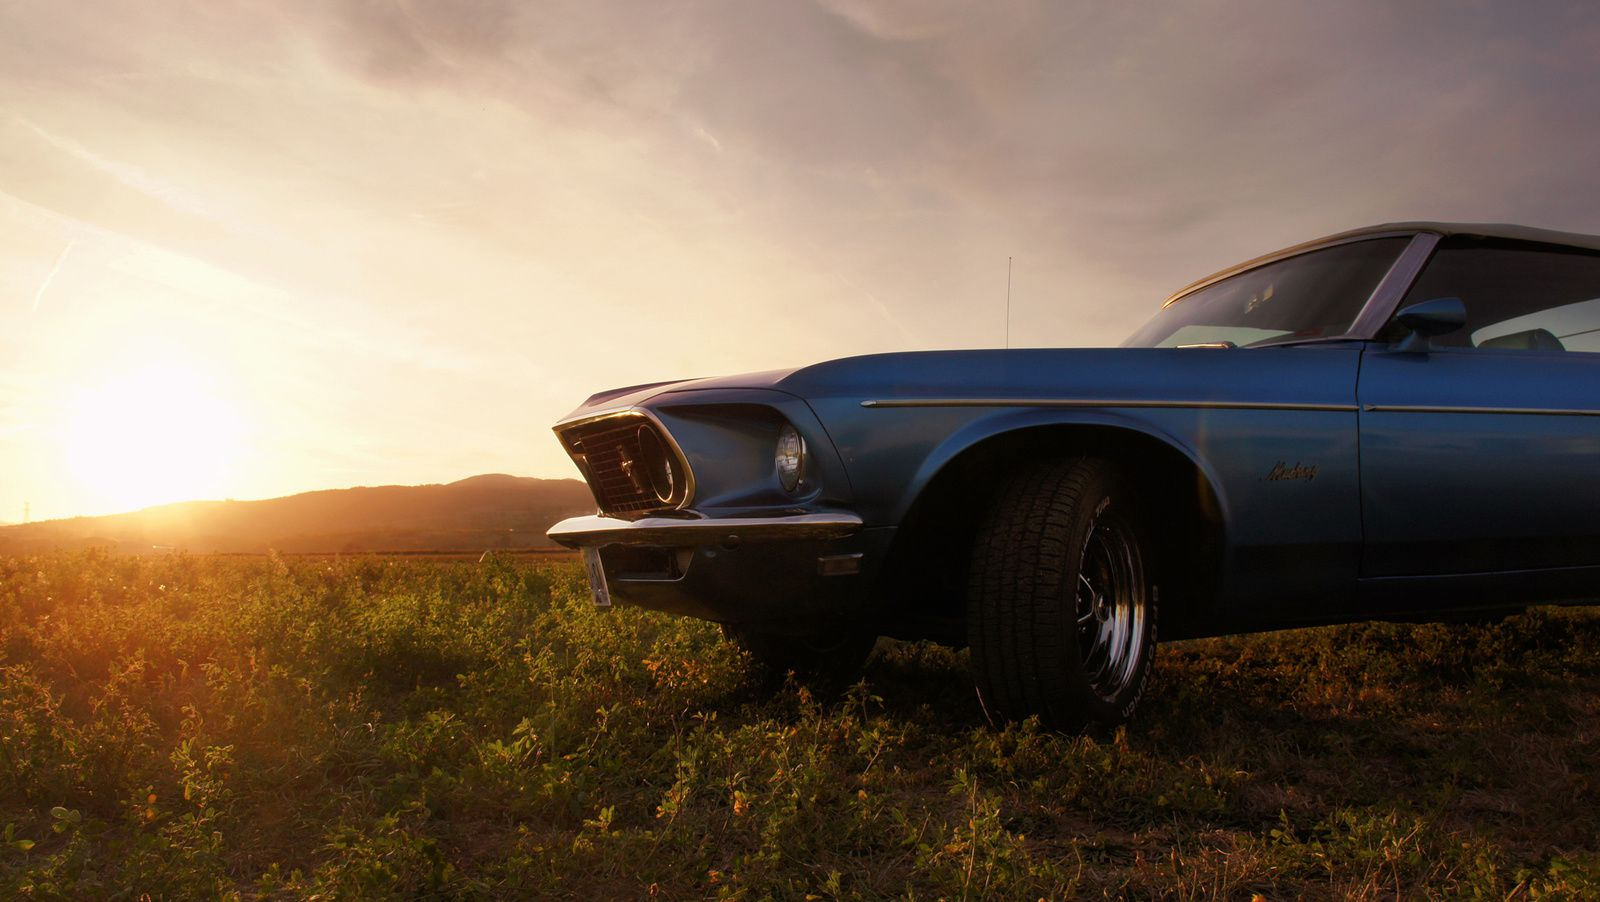 Ford Mustang; Thelma et Lousie; Roadtrip; shooting; Muscle Car; Duo